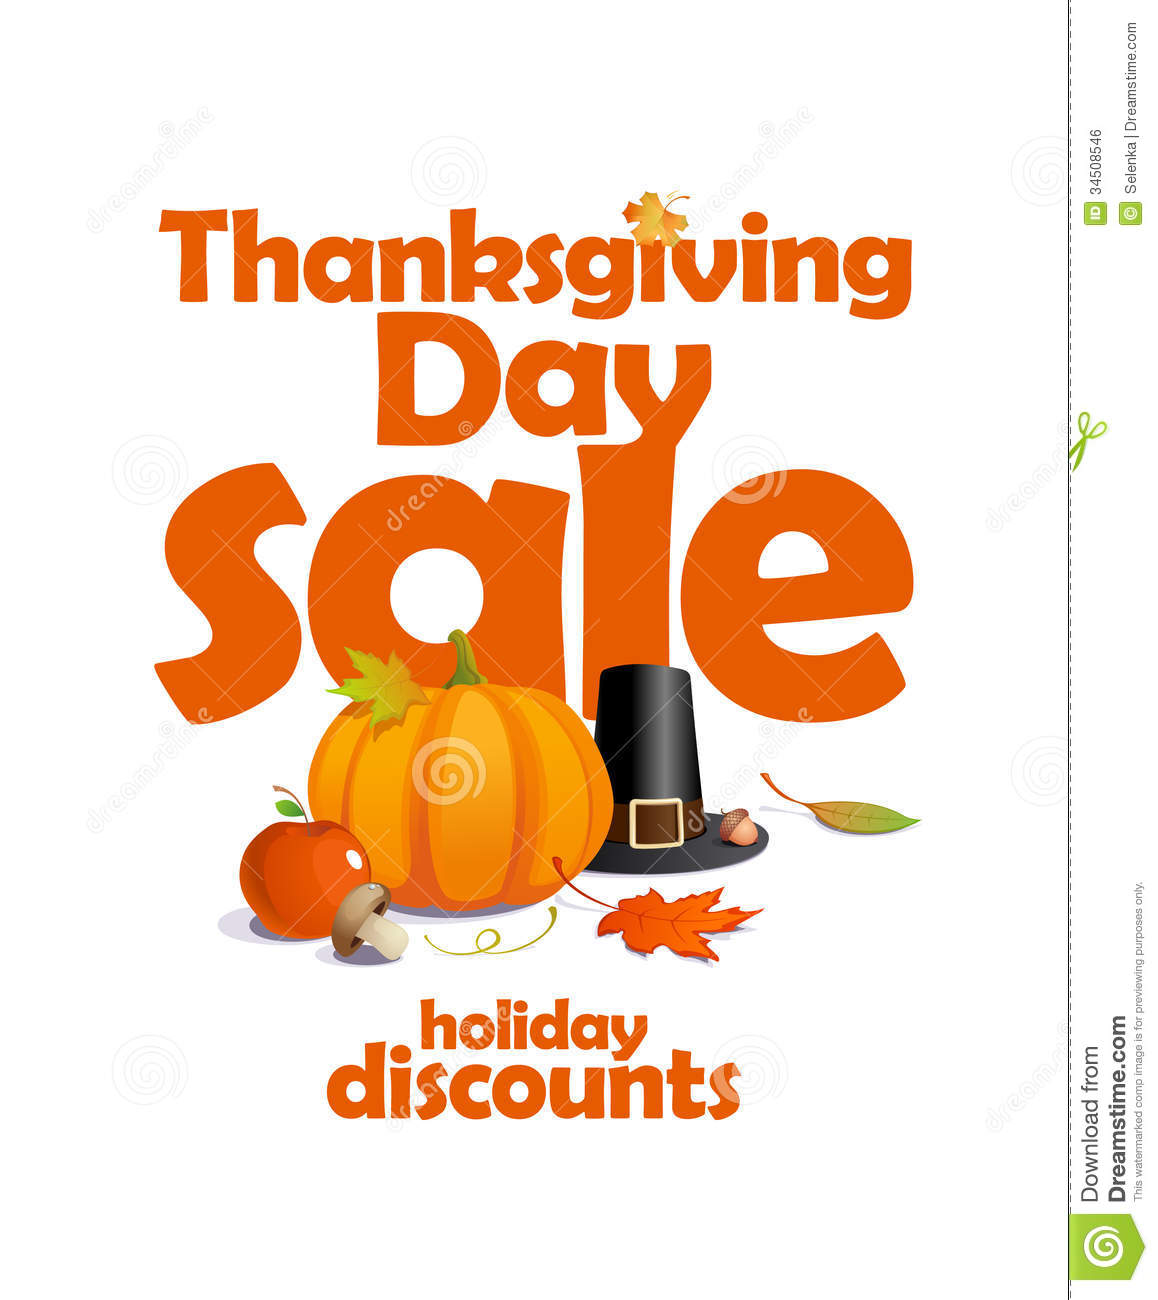 Thanksgiving Day Sale Design Stock Vector Illustration Of Poster Discounts 34508546